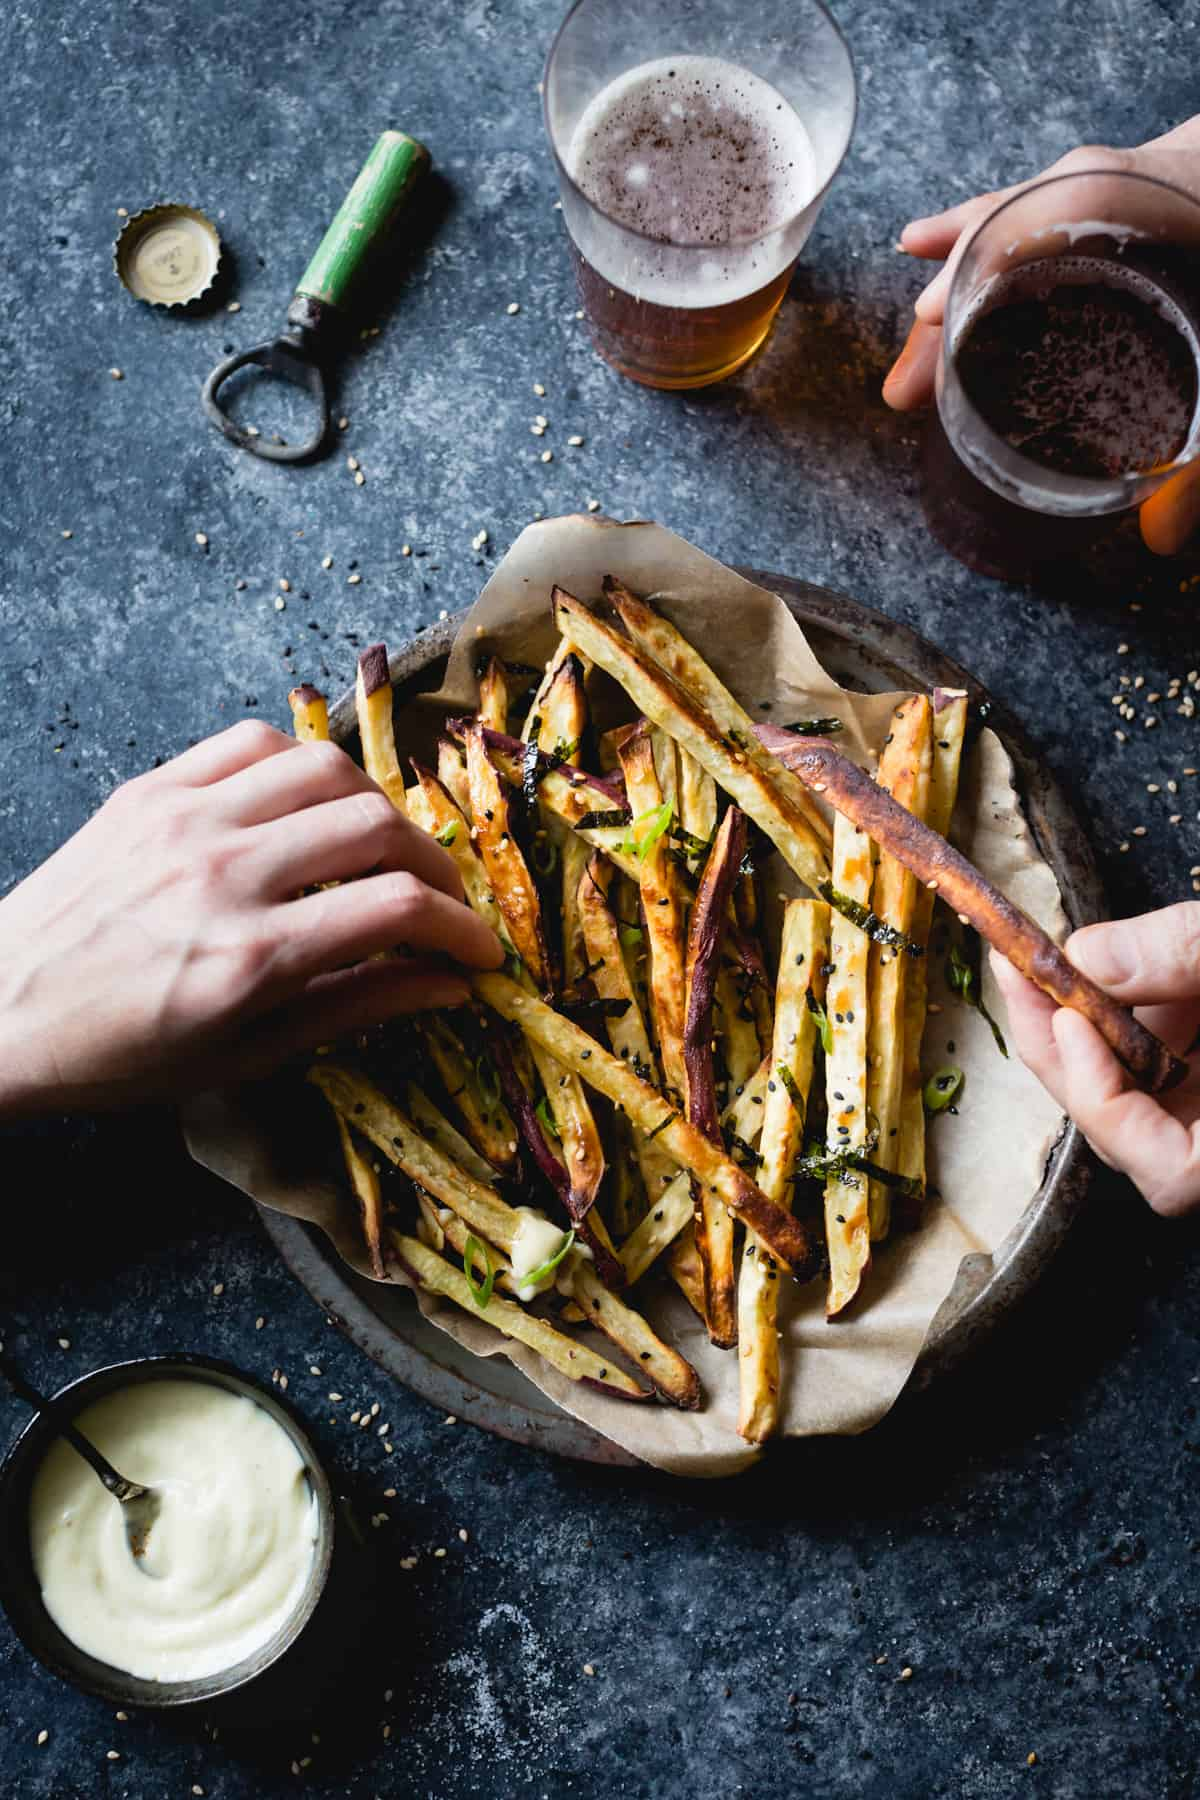 hands picking up some Japanese Sweet Potato Oven Fries with Wasabi Aioli